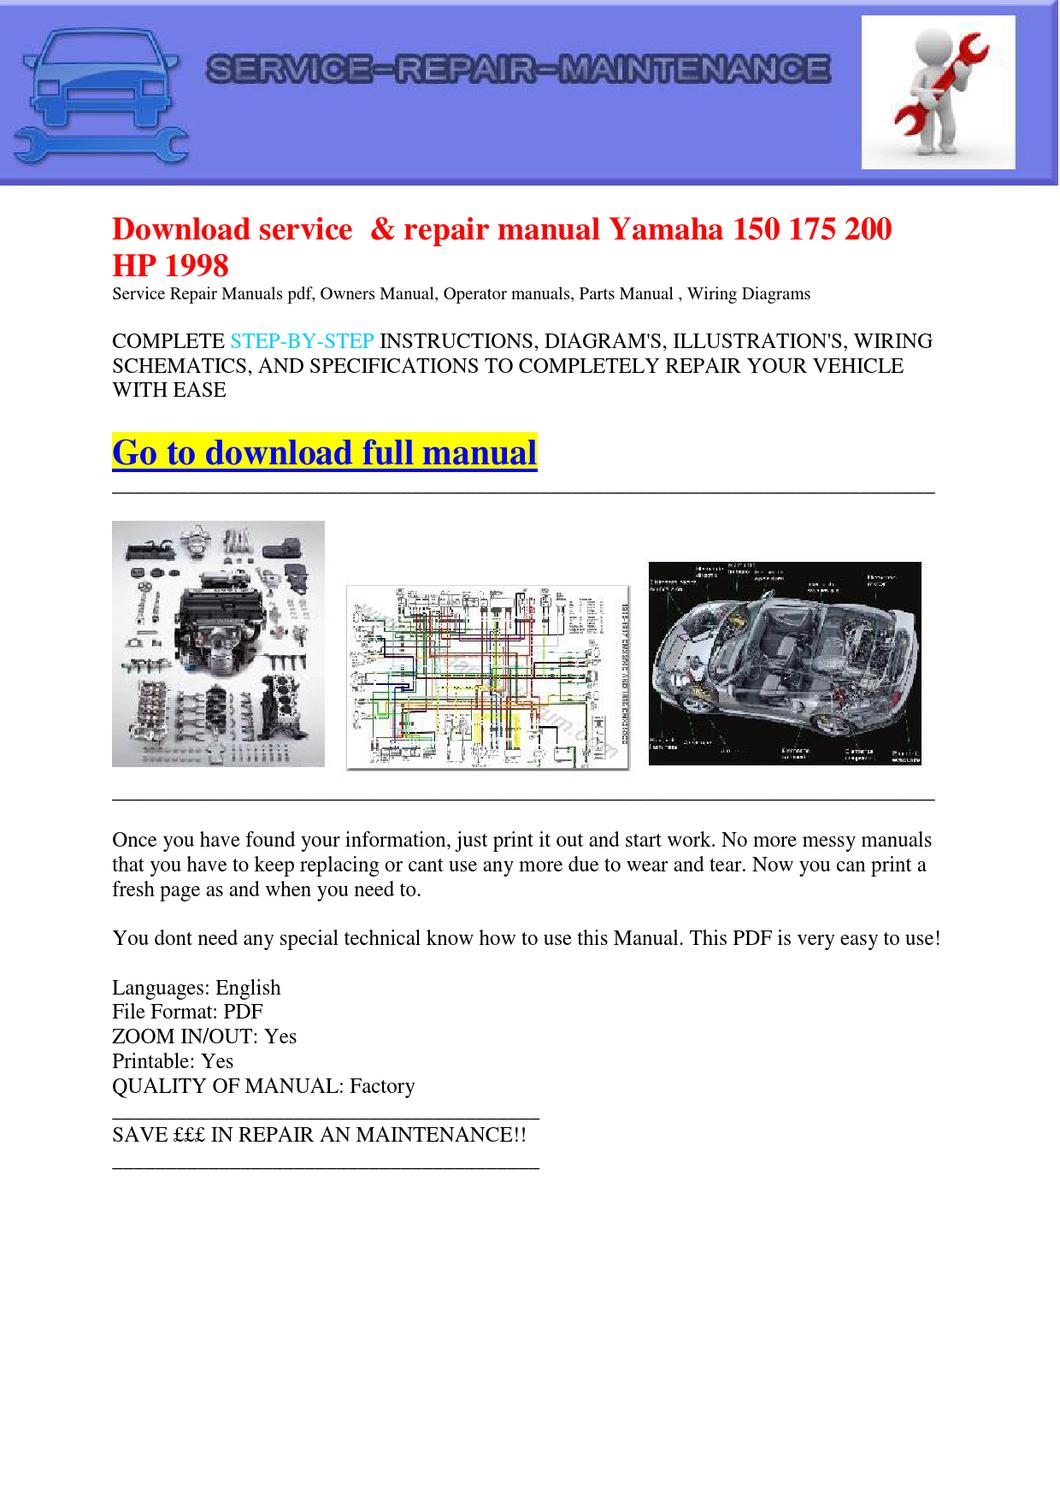 Download Service Repair Manual Yamaha 150 175 200 Hp 1998 By Wiring Diagram Dernis Castan Issuu